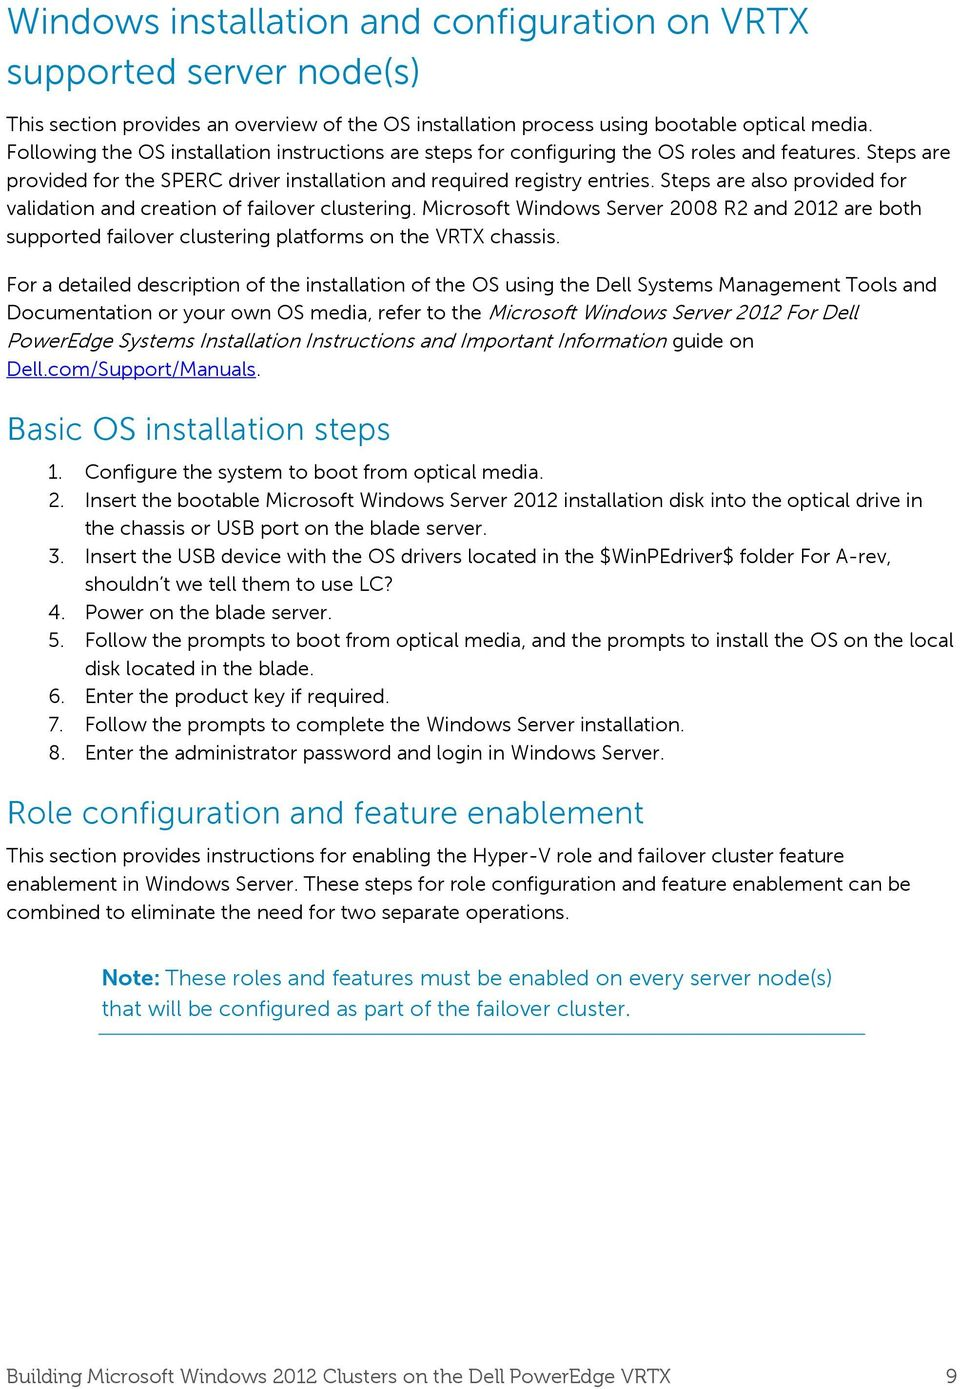 Steps are also provided for validation and creation of failover clustering. Microsoft Windows Server 2008 R2 and 2012 are both supported failover clustering platforms on the VRTX chassis.